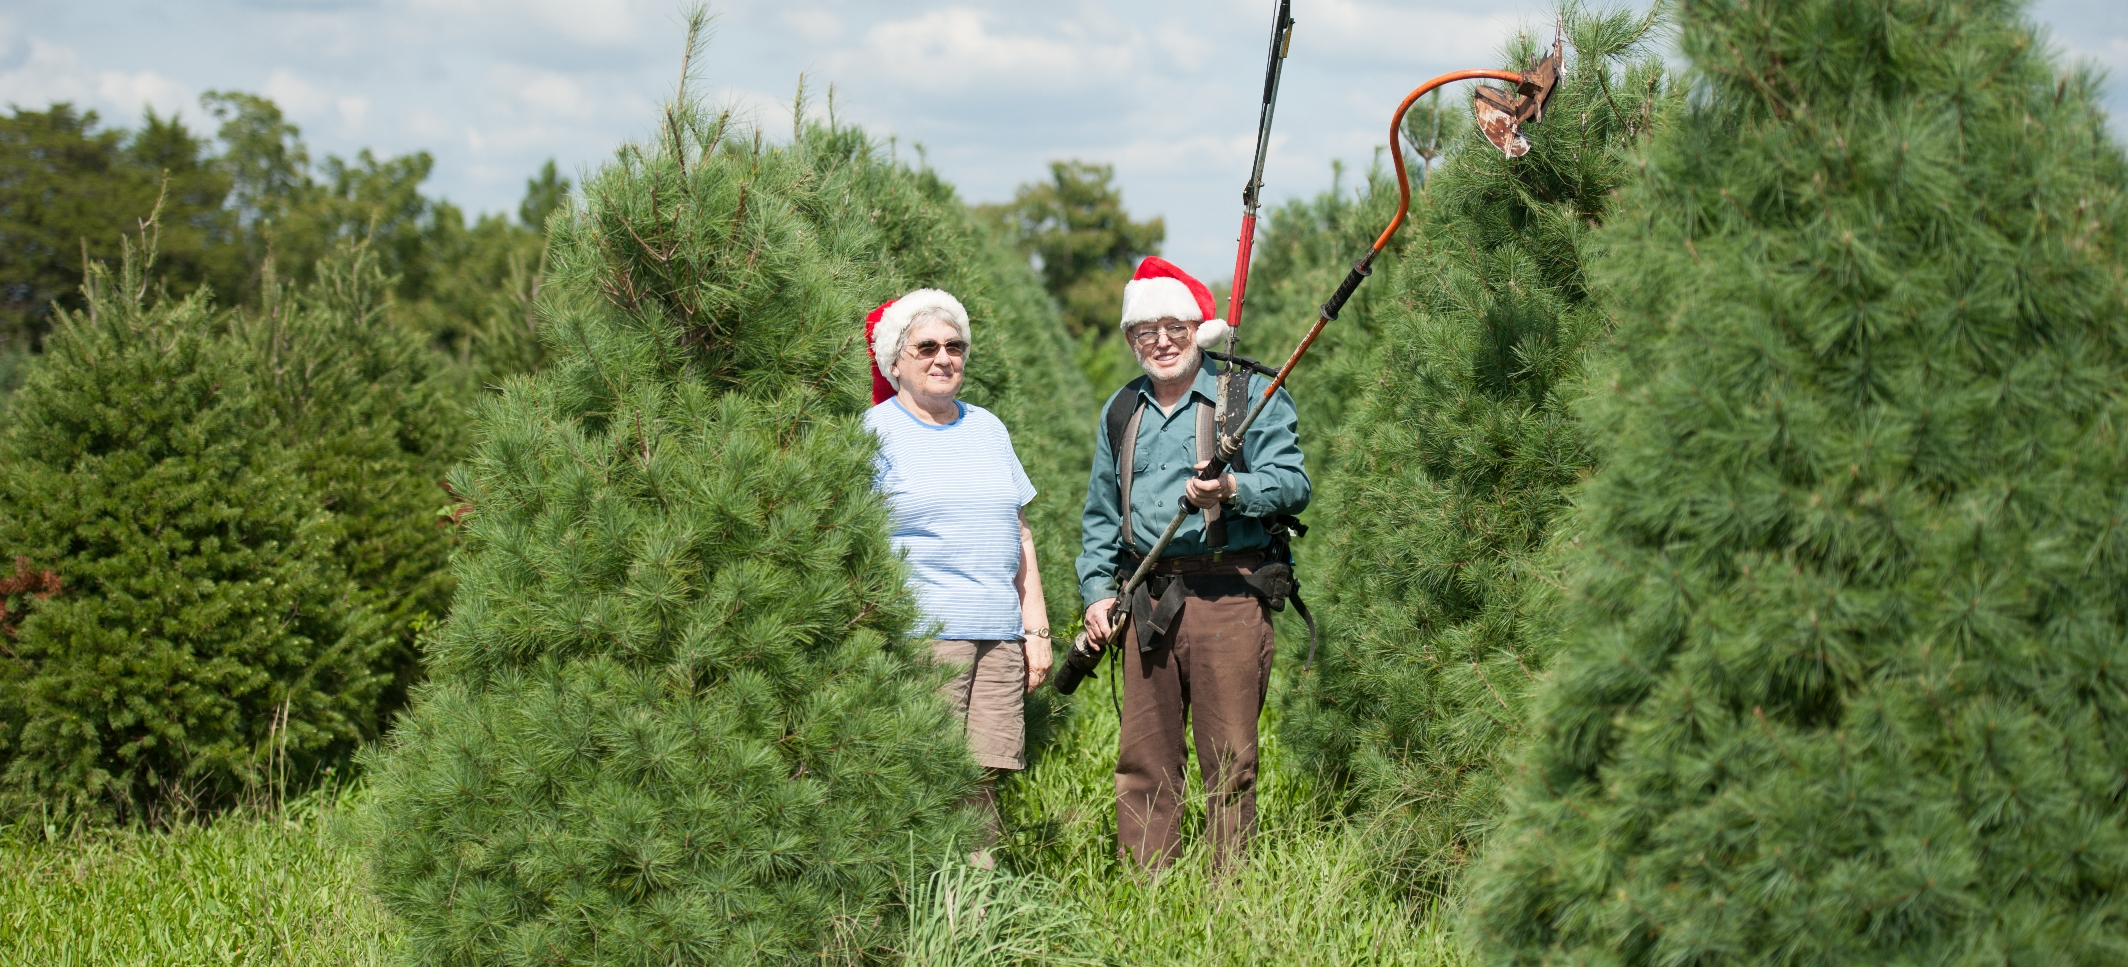 Get Fresh & Fragrant, Buy a Local Christmas Tree | Marylands Best